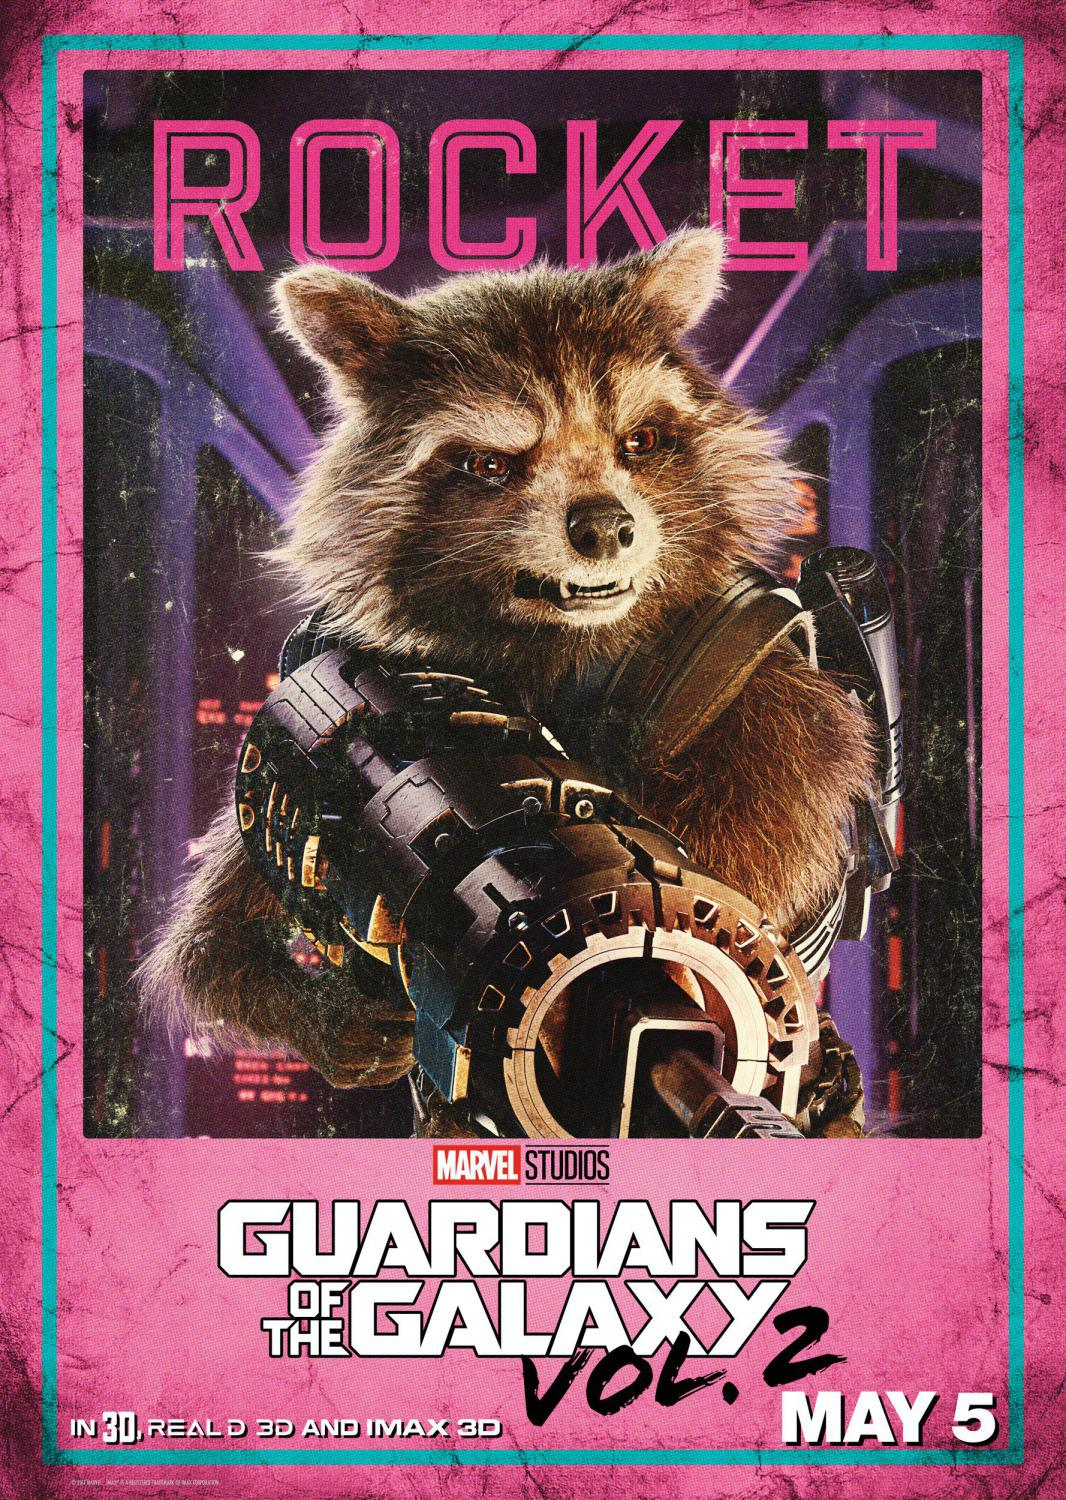 Guardians of the Galaxy vol two - Guardiani della Galassia 2 - Rocket